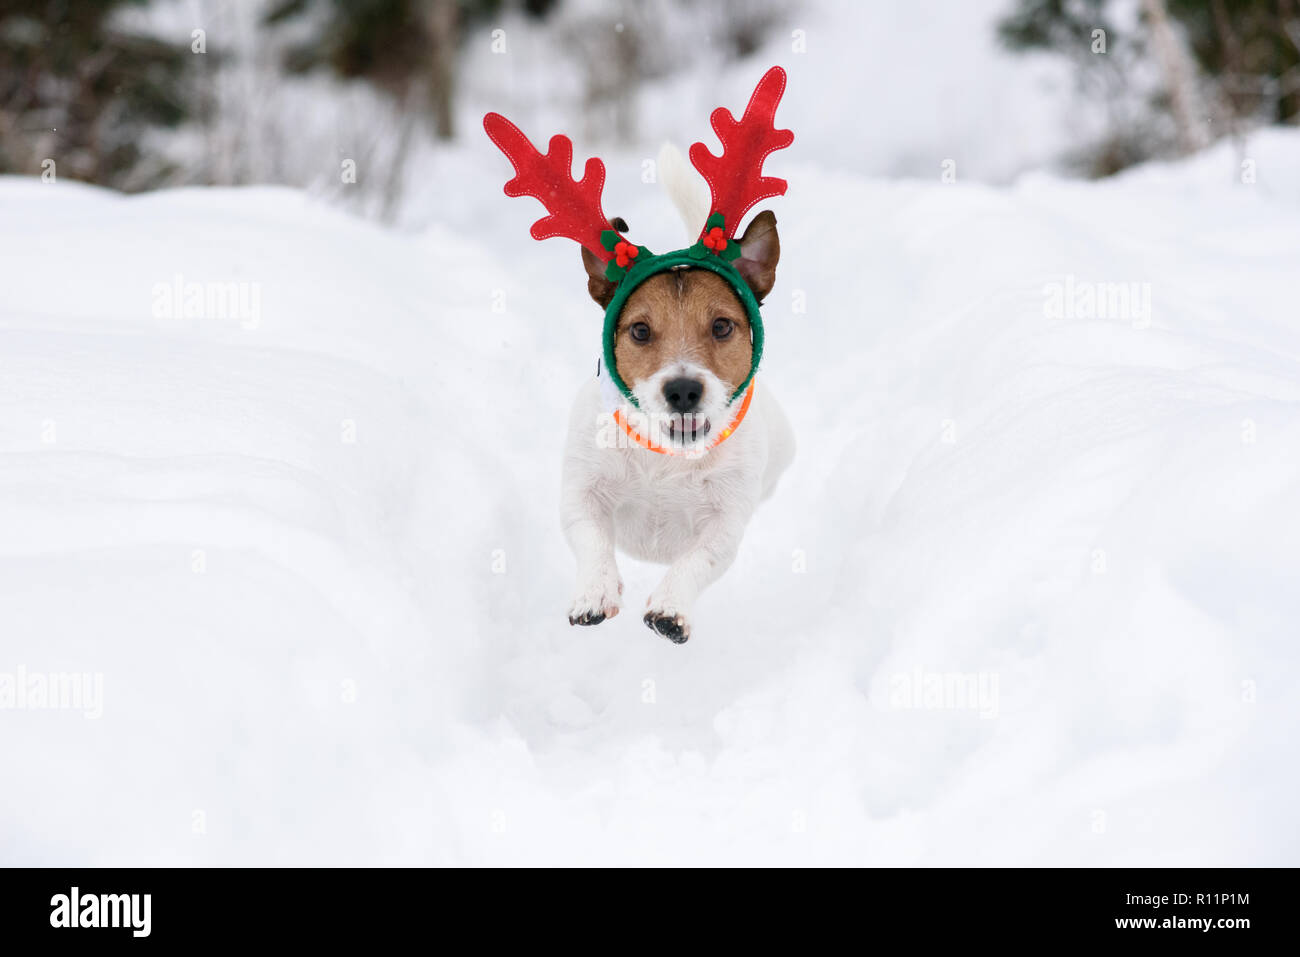 Dog wearing antlers of Christmas reindeer plays in deep snow - Stock Image